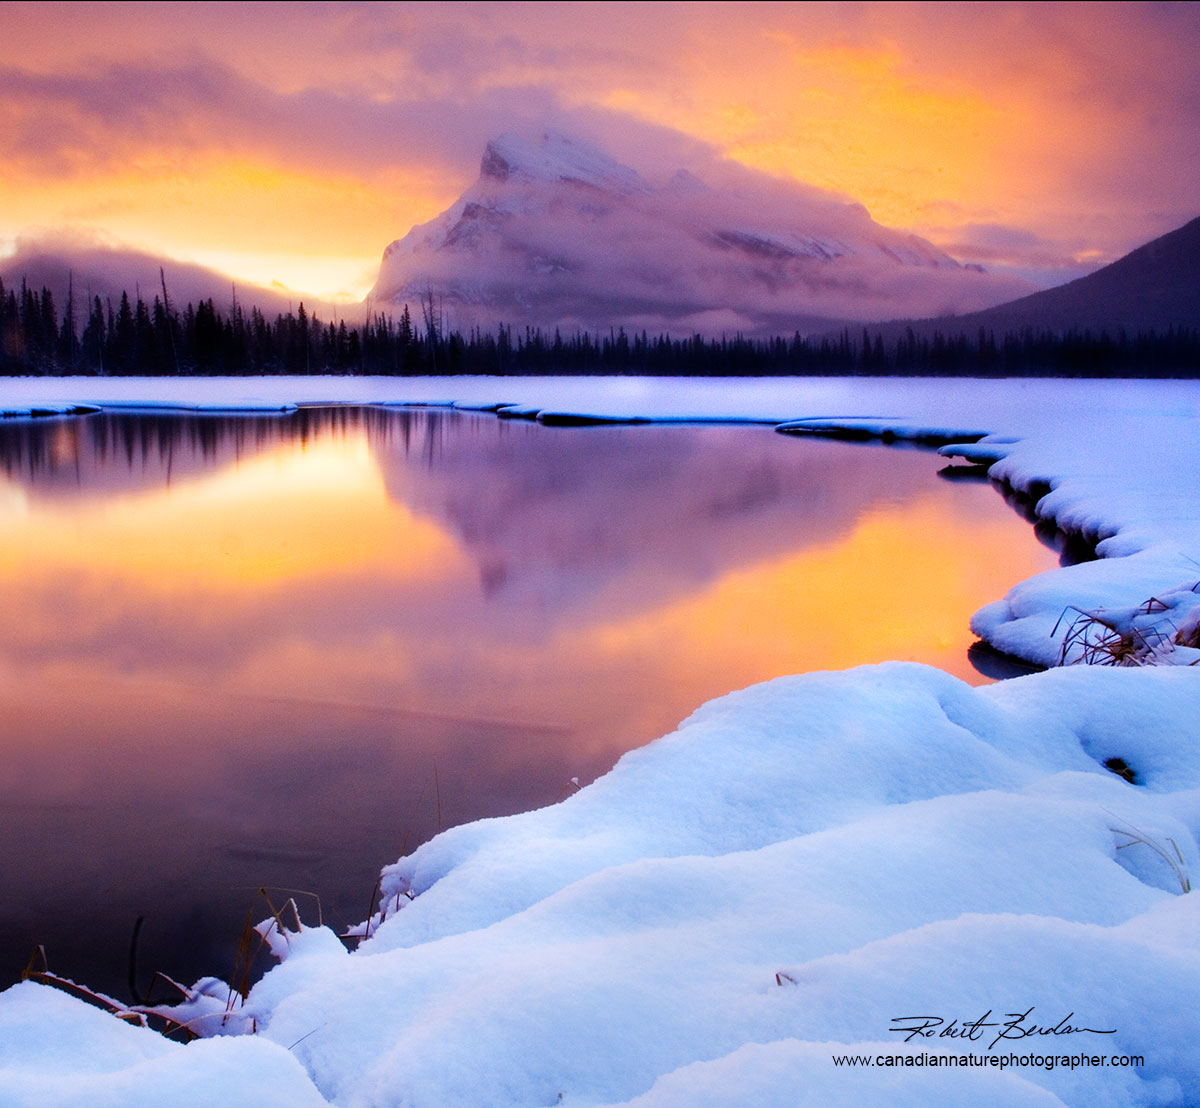 Sunrise Vermilion Lake outside Banff in January by Robert Berdan ©